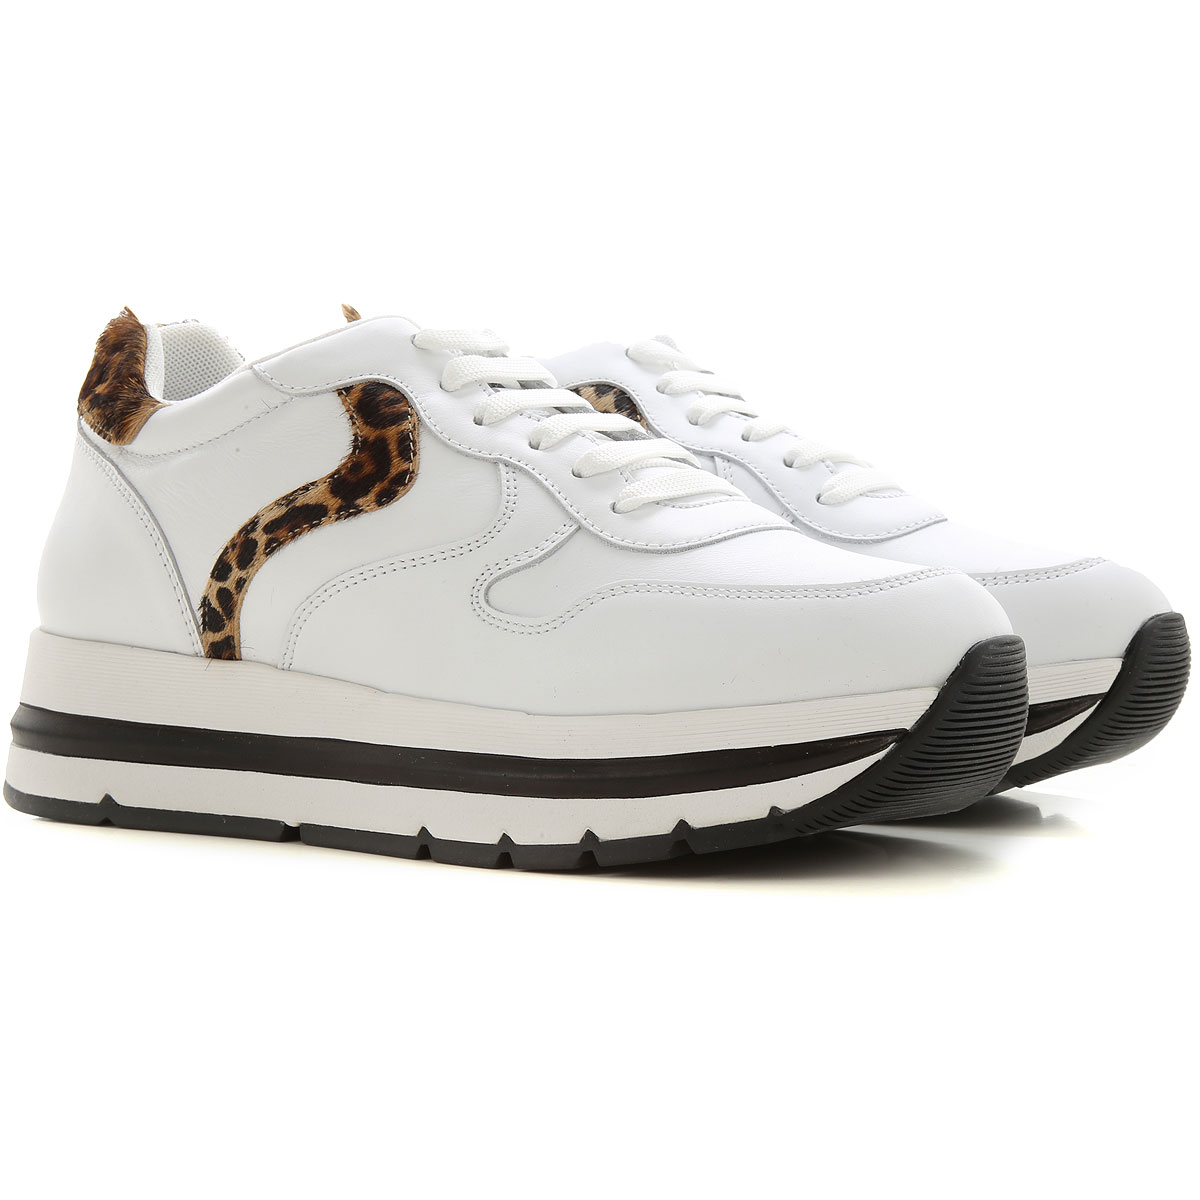 Voile Blanche Sneakers for Women On Sale, White, Leather, 2019, 6 7 8 9